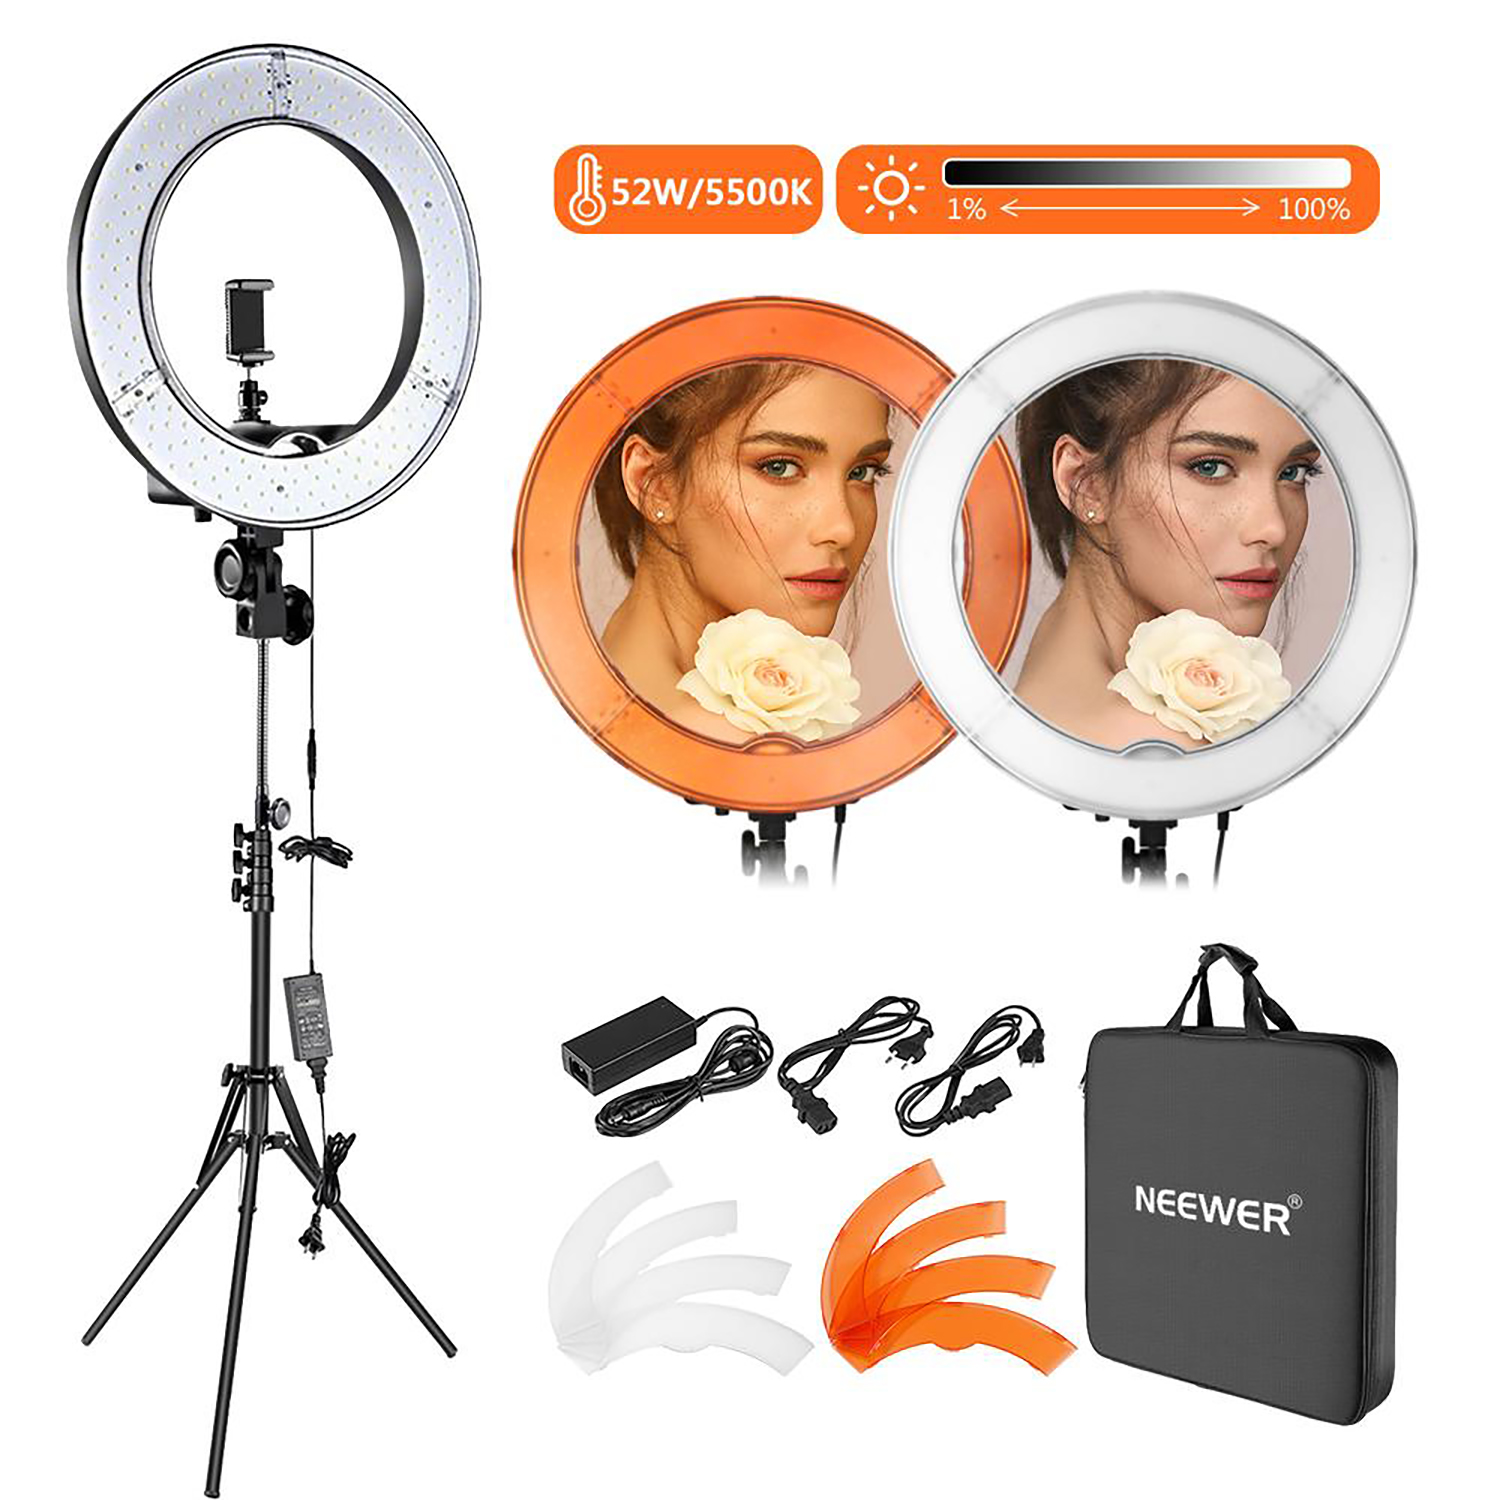 Product shot of Neewer ring light